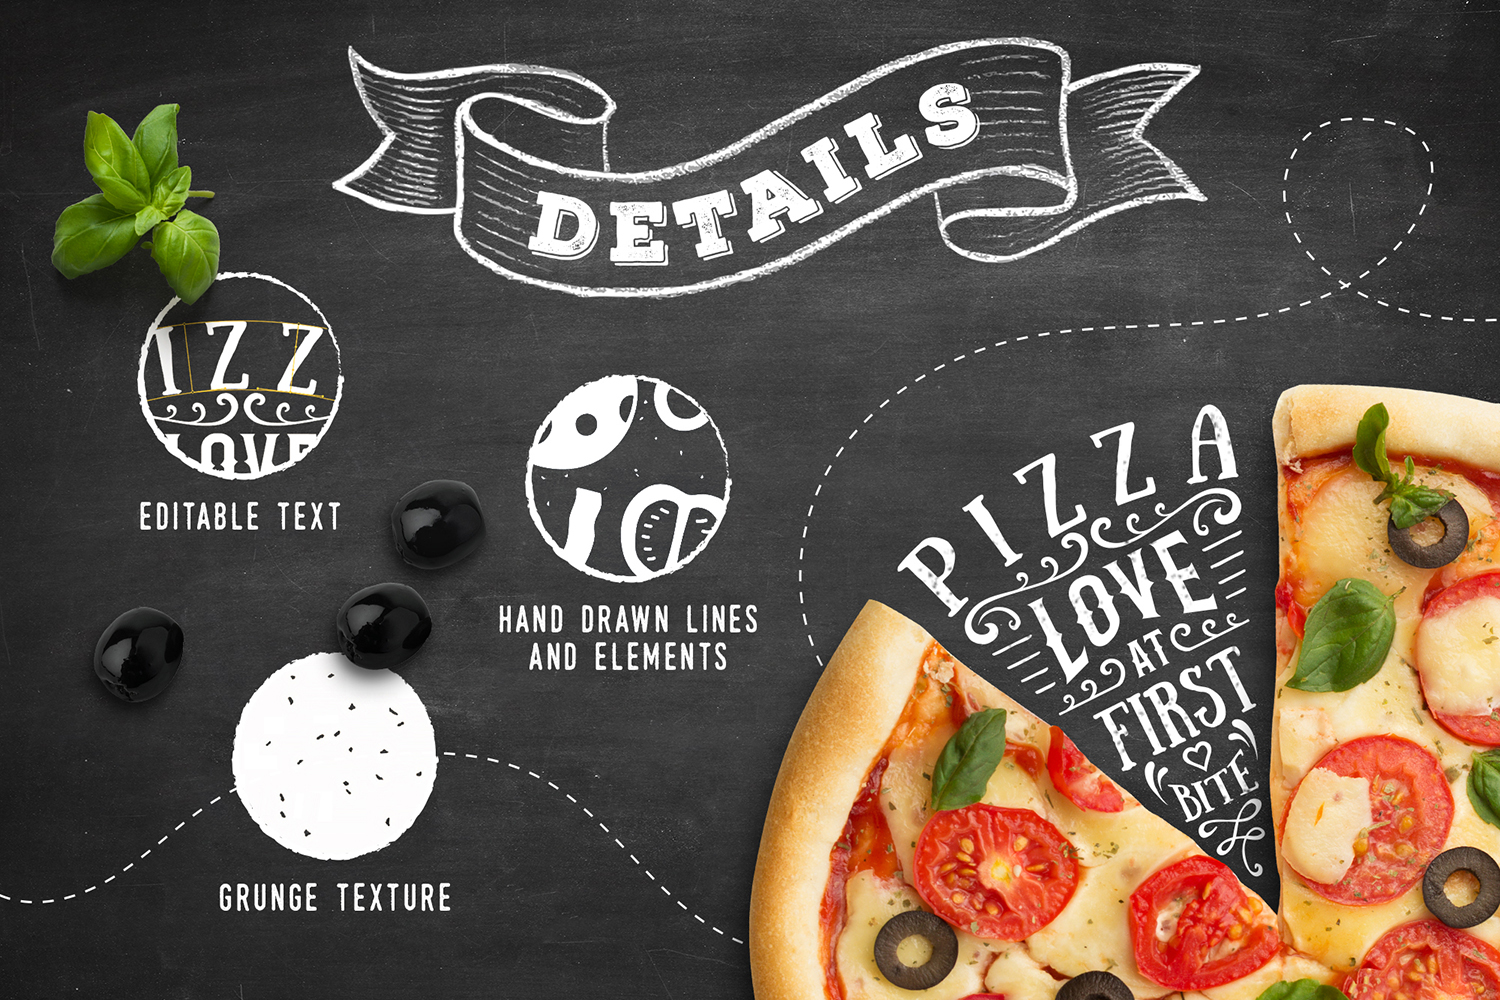 6 Hand Drawn Pizza Slice Badges Graphic Illustrations By Cosmic Store - Image 3